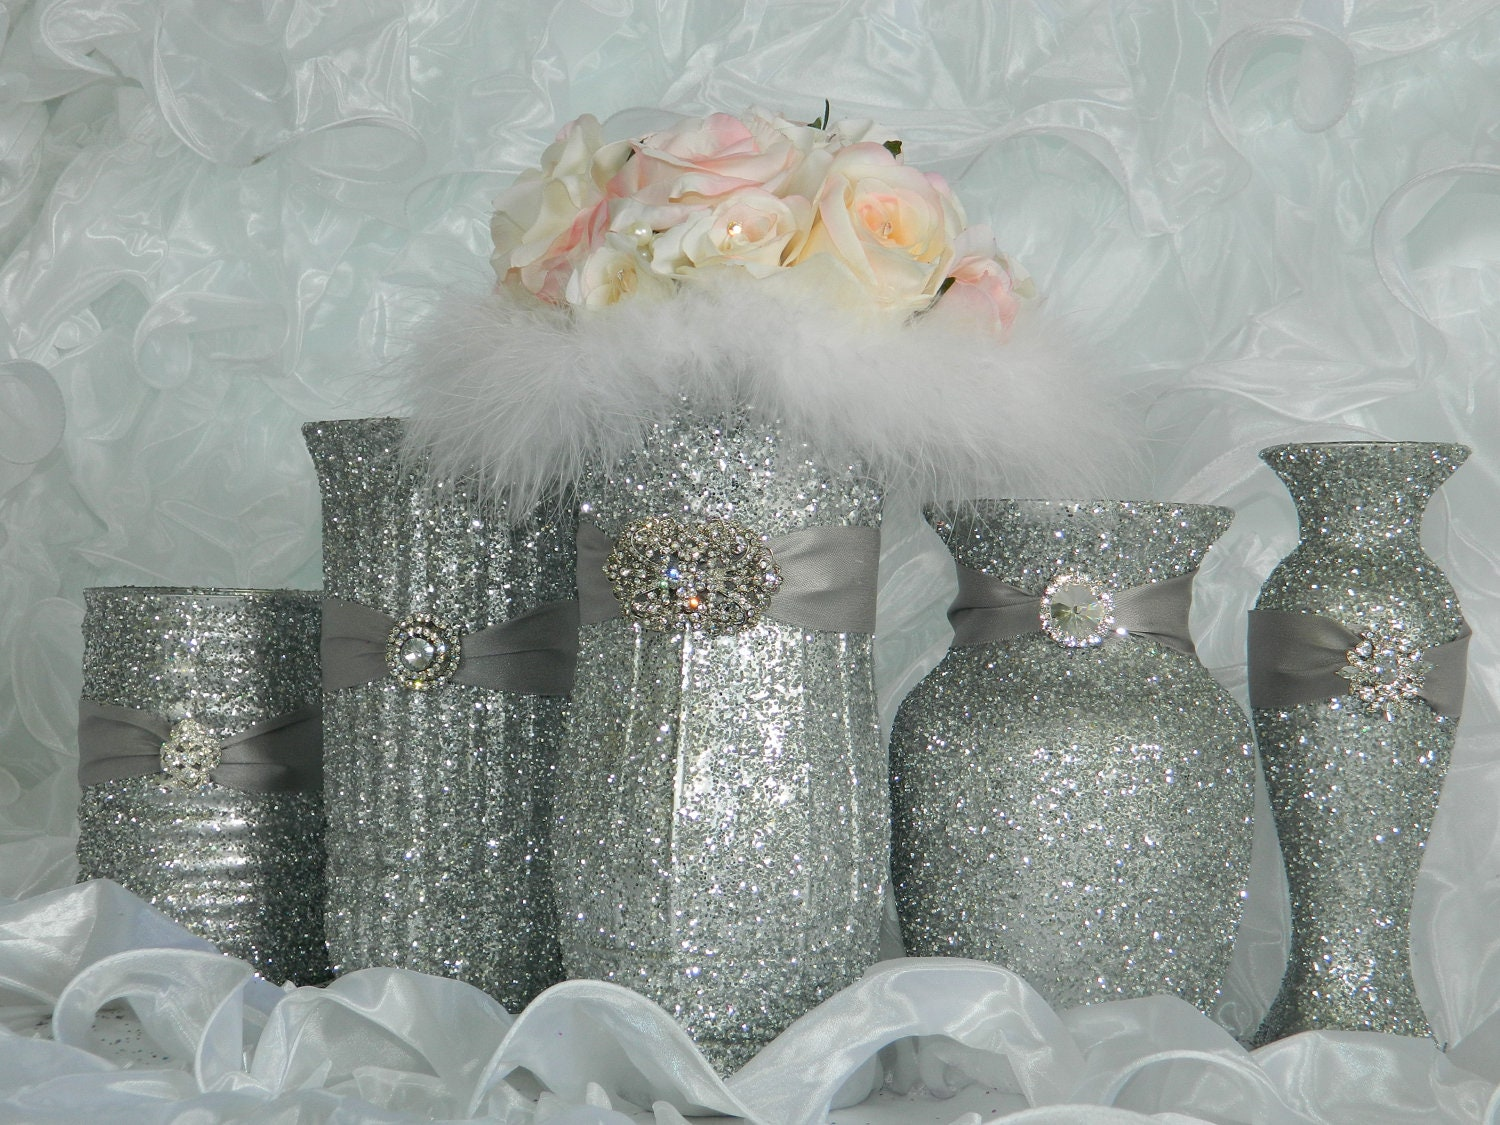 Weddings, Wedding Decorations, Wedding Centerpieces, Baby Shower, Bridal Shower, Silver, Shabby Chic, Christmas Decorations, New Years